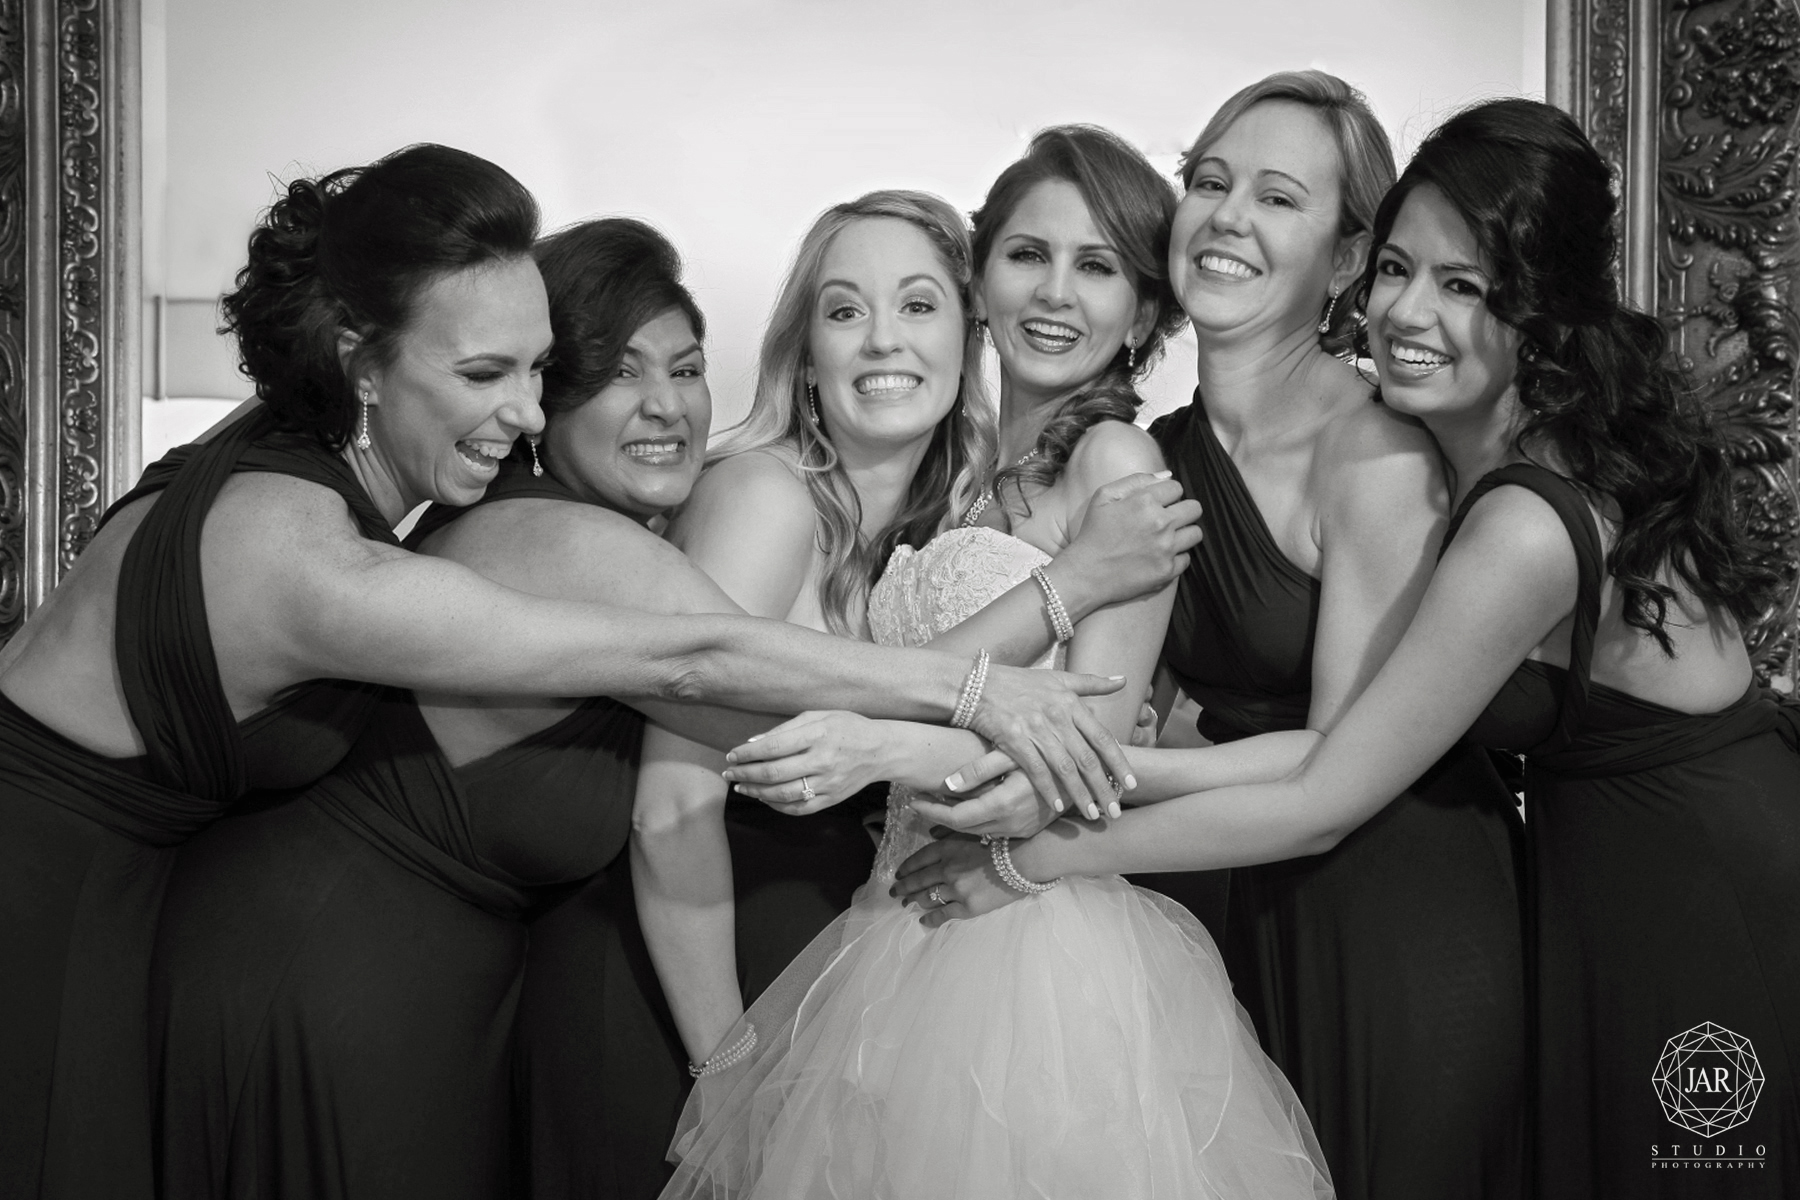 13-bridesmaids-fun-jarstudio-photography-orchid-garden-at-church-street.JPG